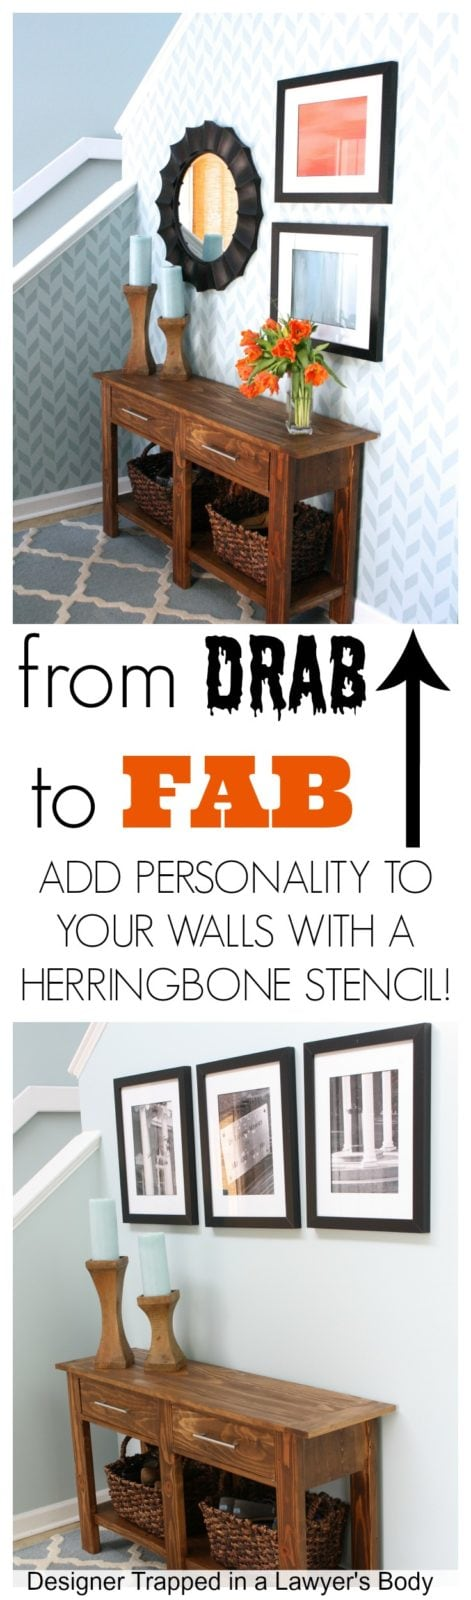 DIY Herringbone Stenciled Wall by Designer Trapped in a Lawyer's Body {designertrapped.com}